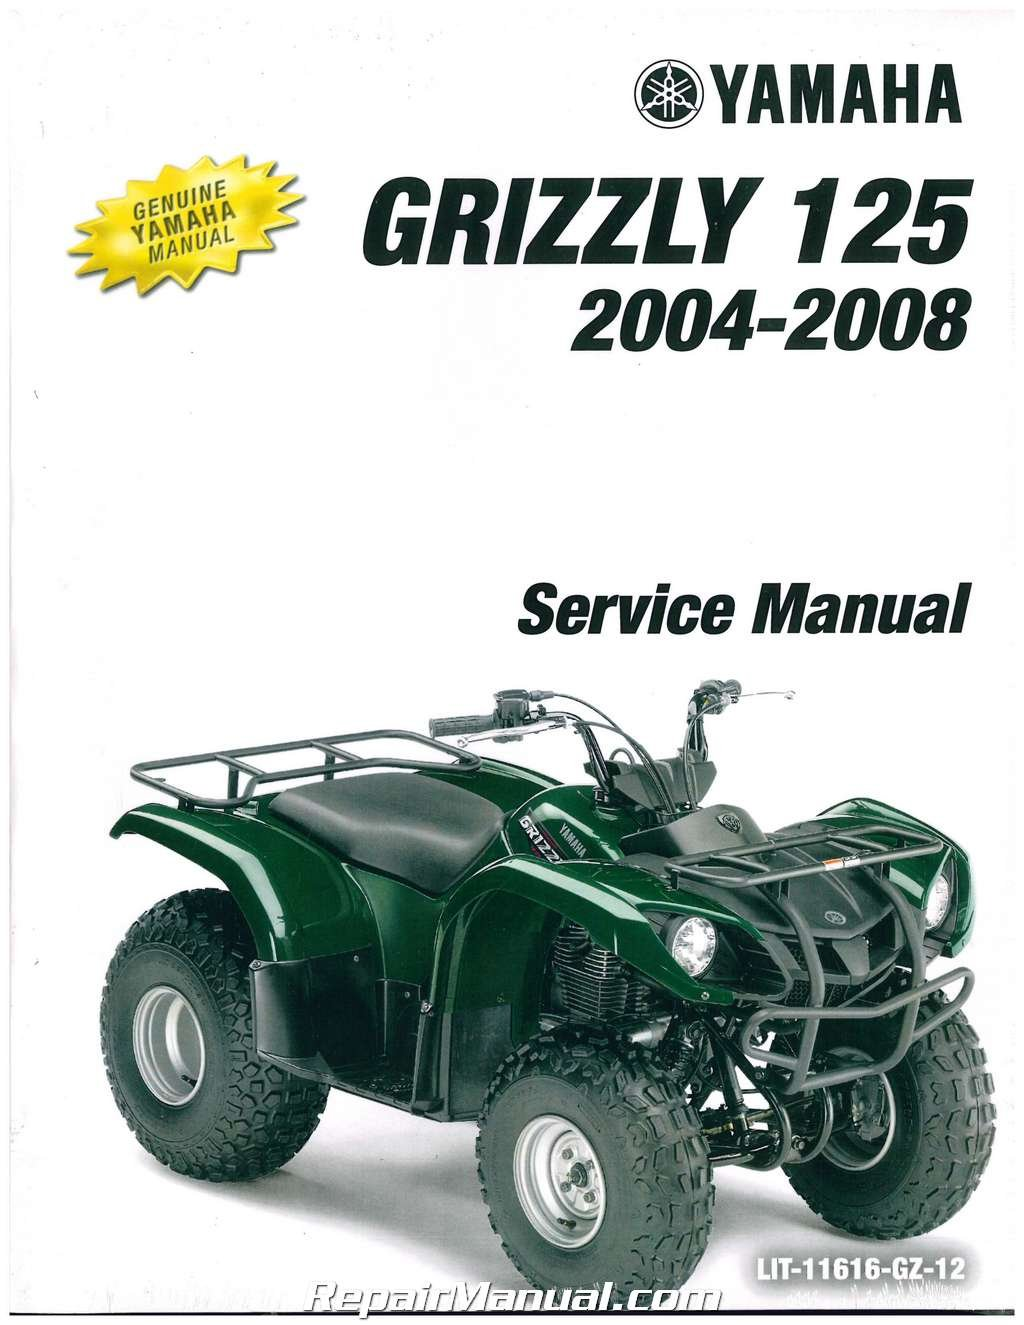 LIT-11616-GZ-12 2004-2013 Yamaha YFM125G Grizzly 125 Automatic Service  Manual: Manufacturer: Amazon.com: Books